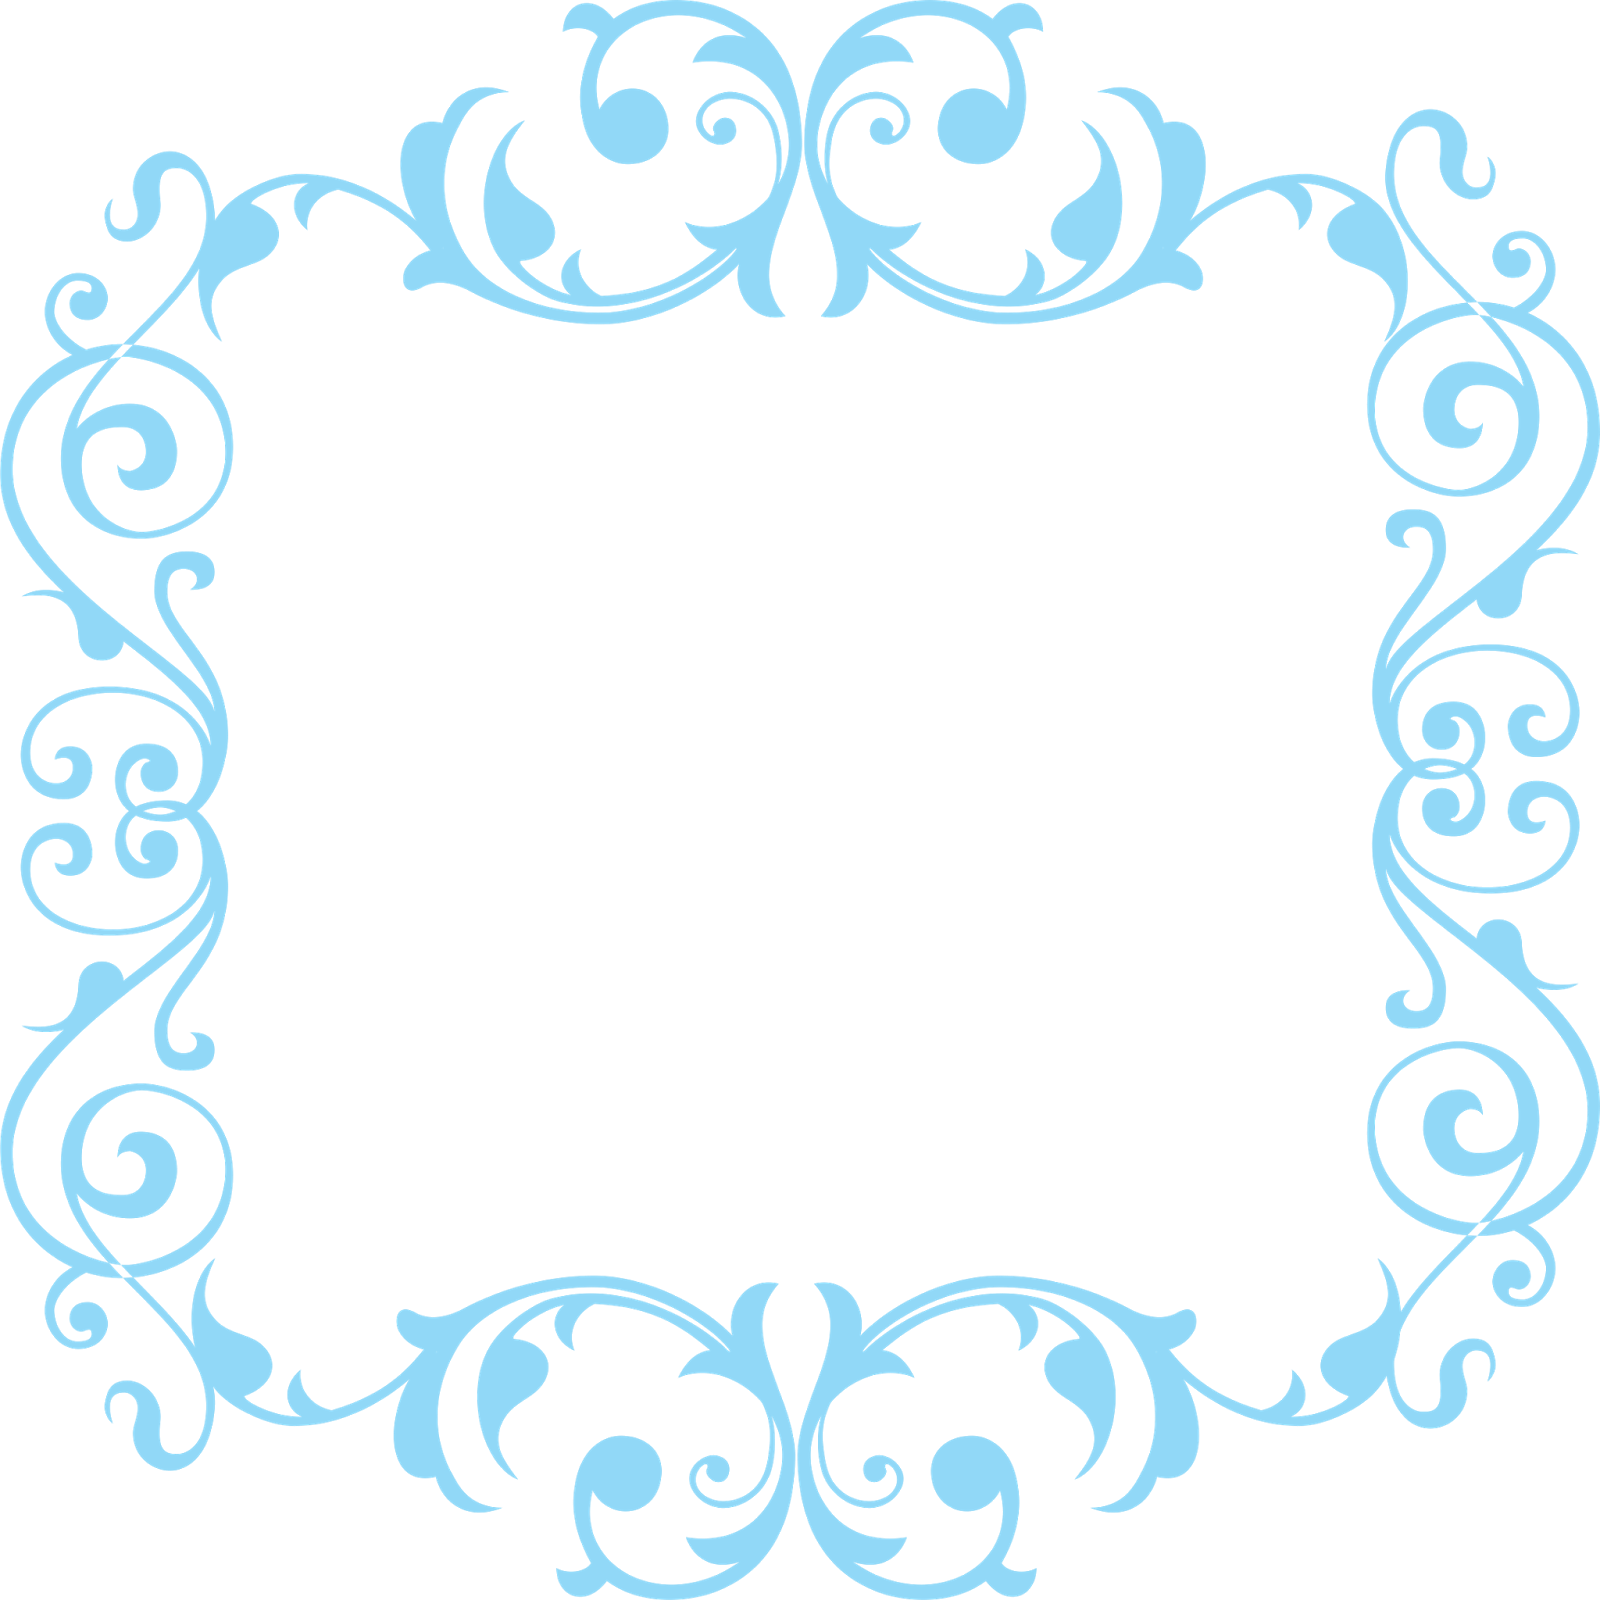 Snowflake flourish border clipart for invitation clipart royalty free FRAME1.png (1600×1600) | Frames and Border cut files | Pinterest ... clipart royalty free